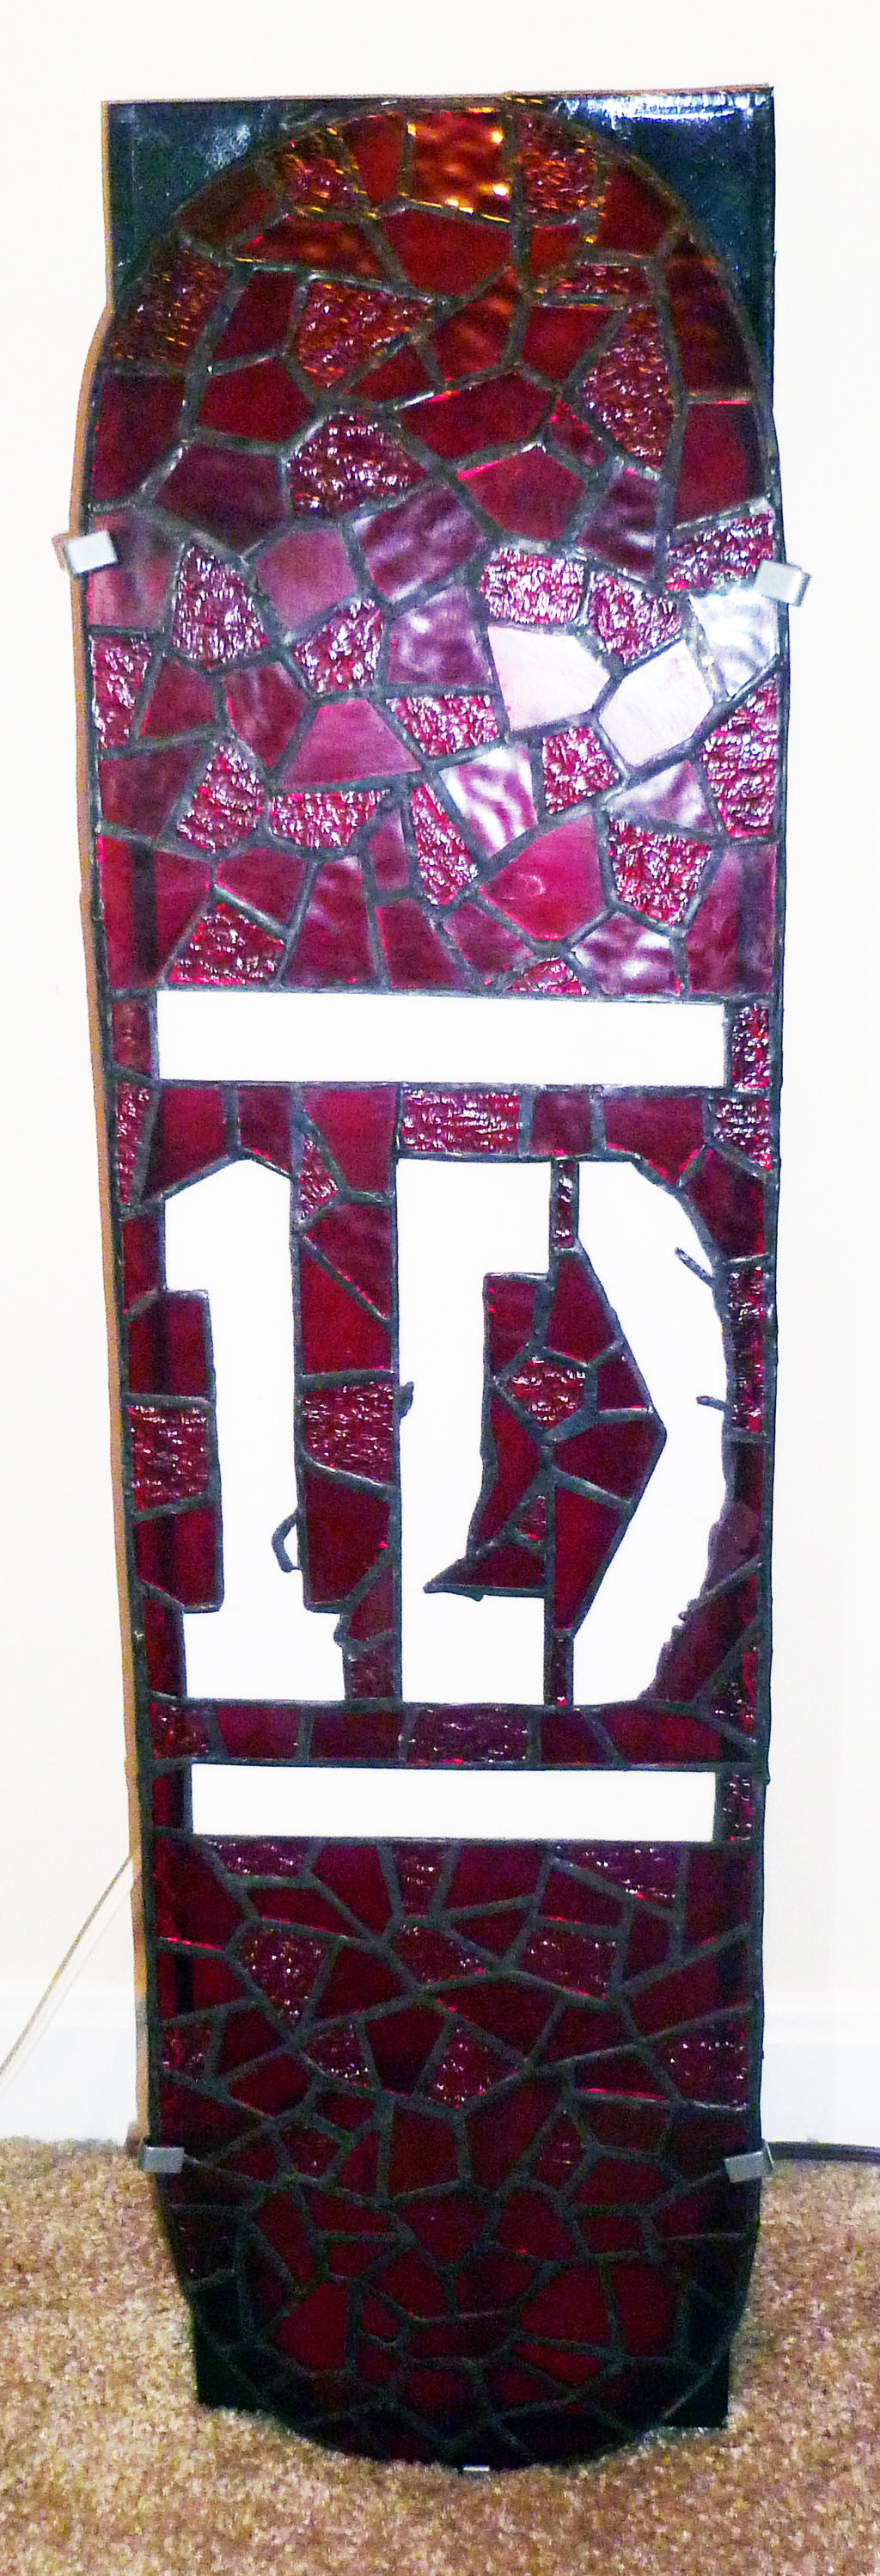 One Direction Stained Glass Wall Light -  Unlit by mclanesmemories